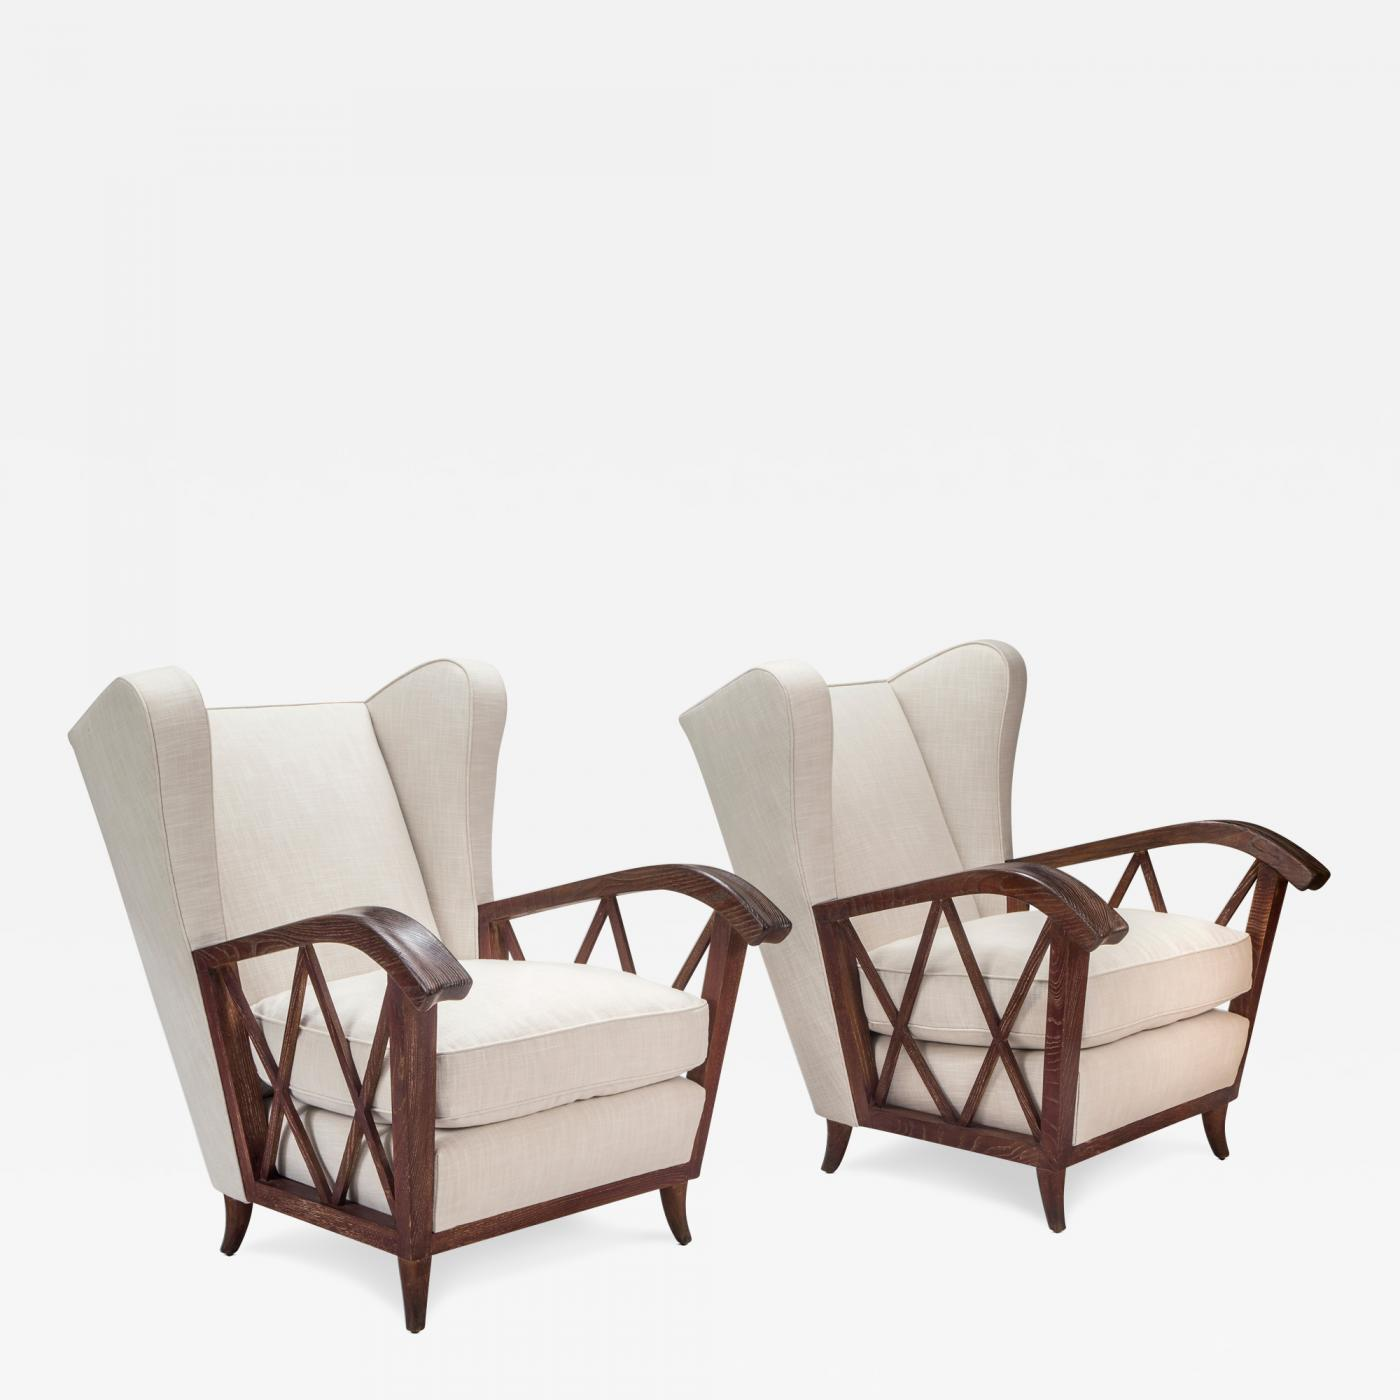 Chairs Comfortable Paolo Buffa Pair Of Comfortable Italian Cerused Wood And Upholstered Chairs